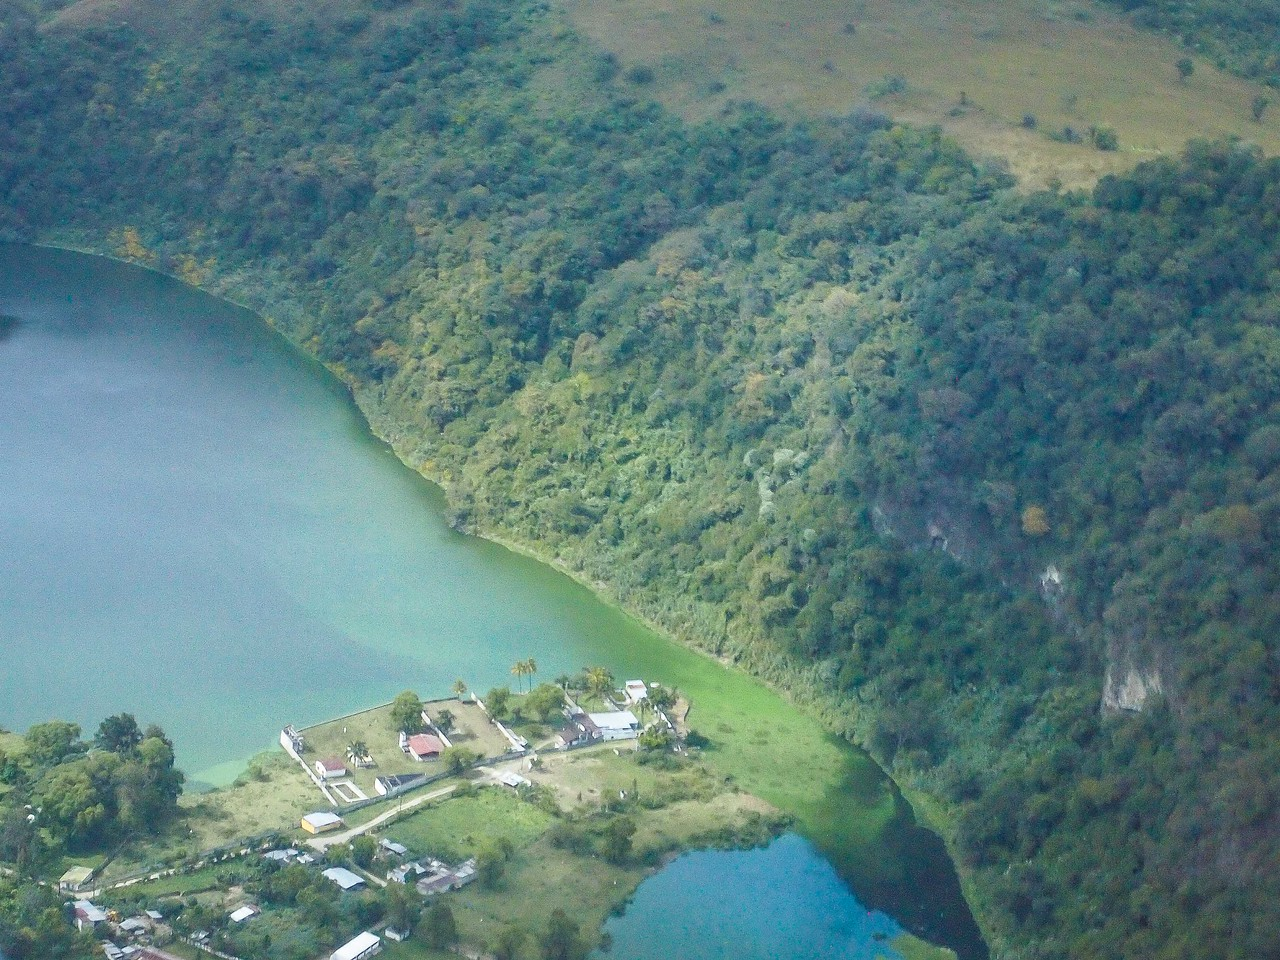 Lake Amatitlan near Guatemala City